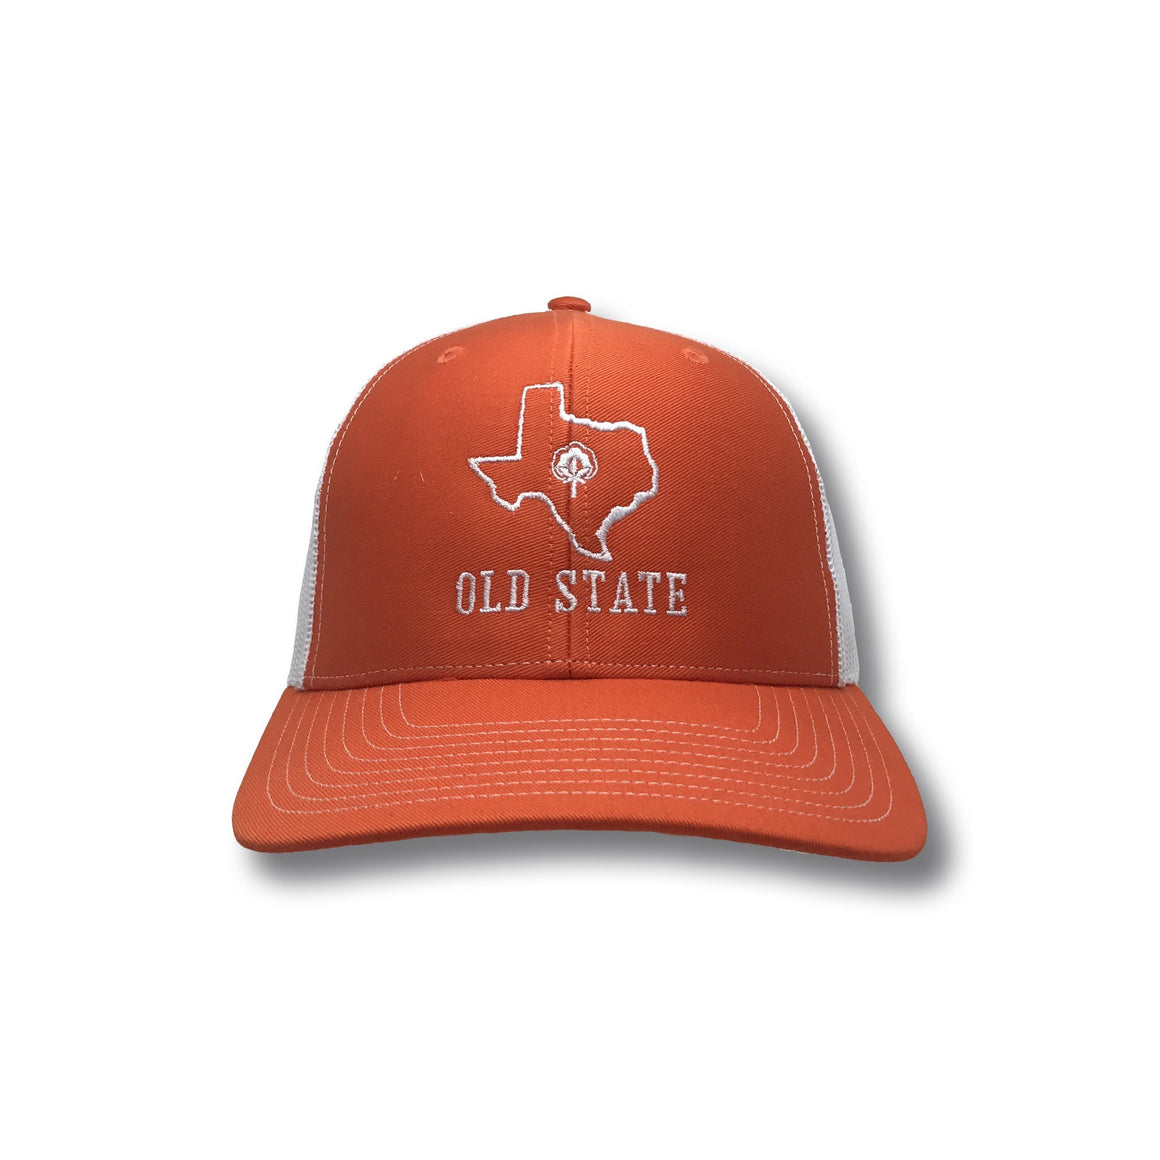 Old State Pride Hats Texas - TX State Logo Trucker Hat